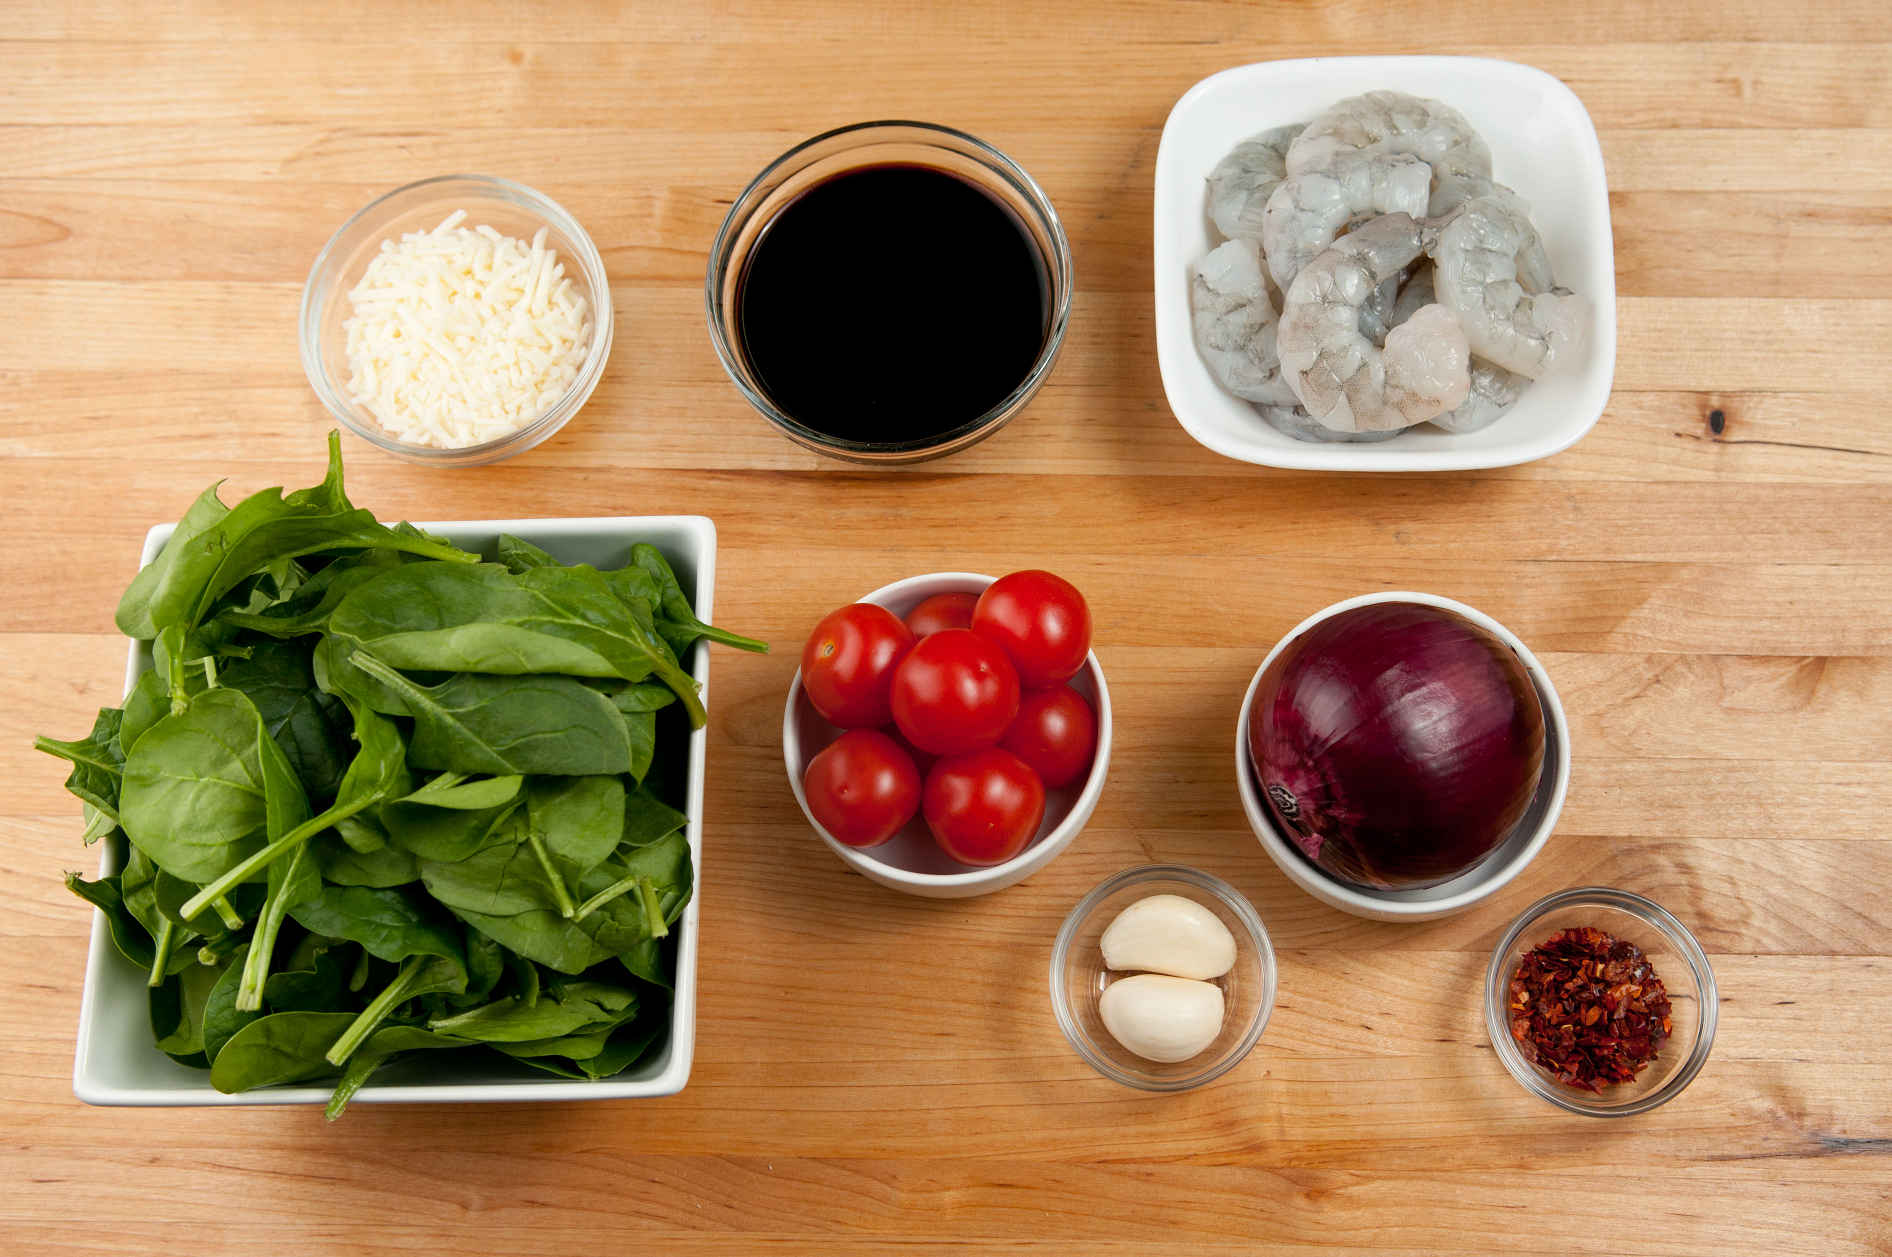 Shrimp_and_spinach_ingredients